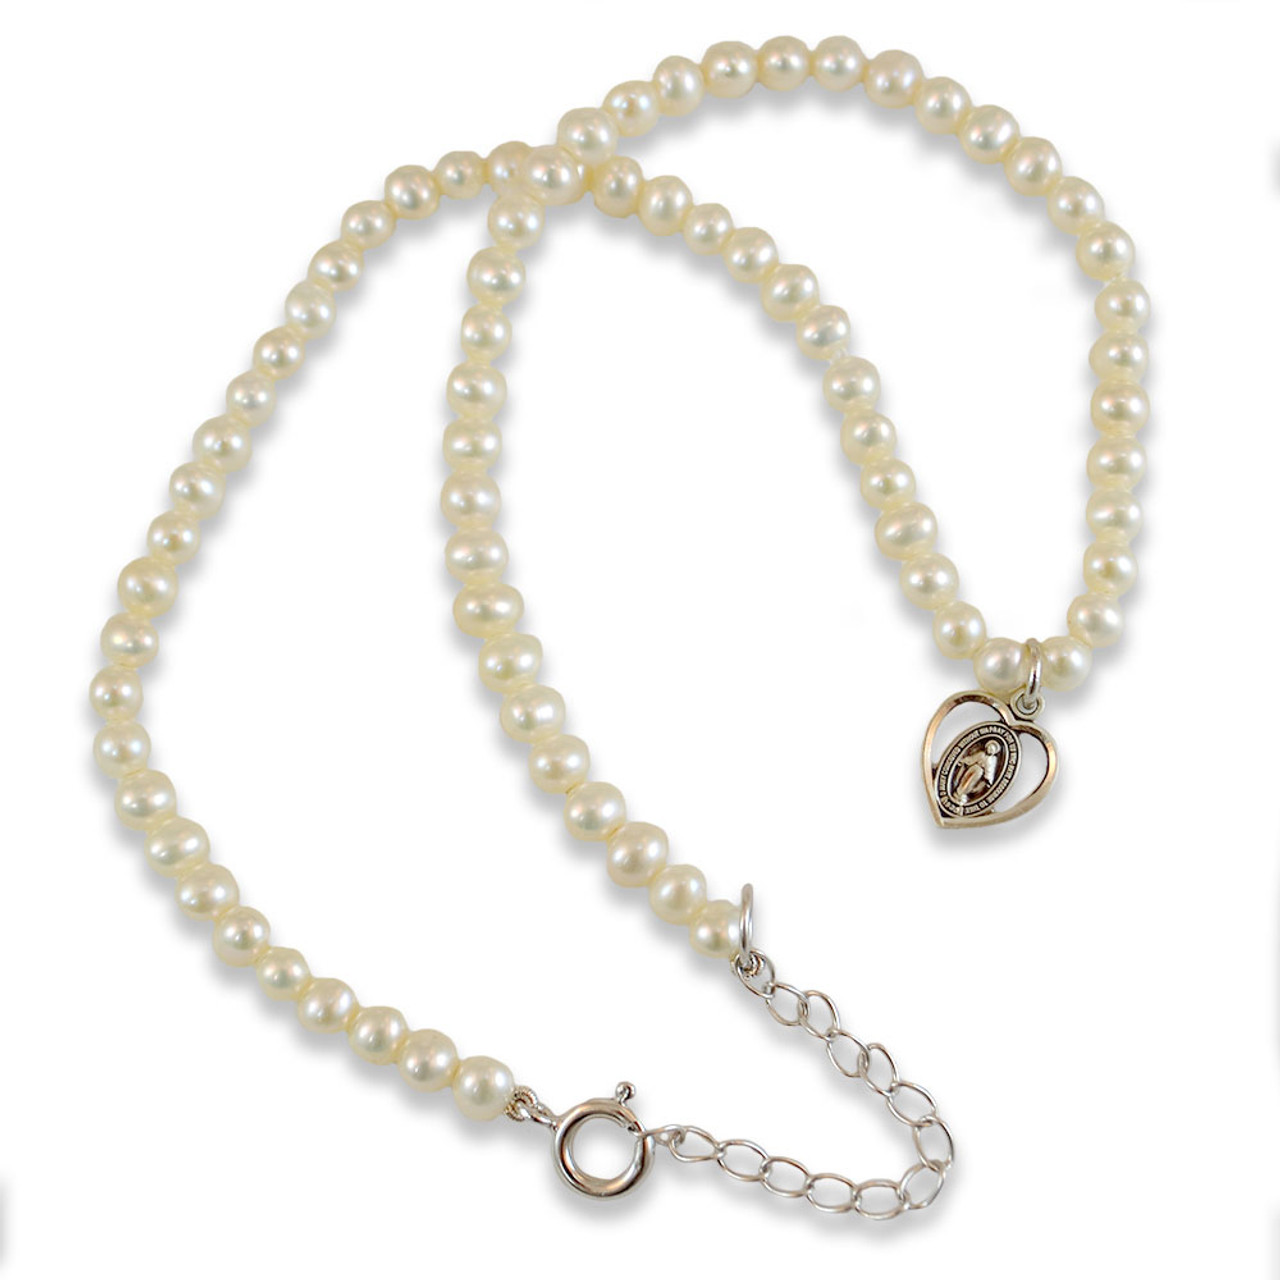 Pearl Necklace with Miraculous Medal